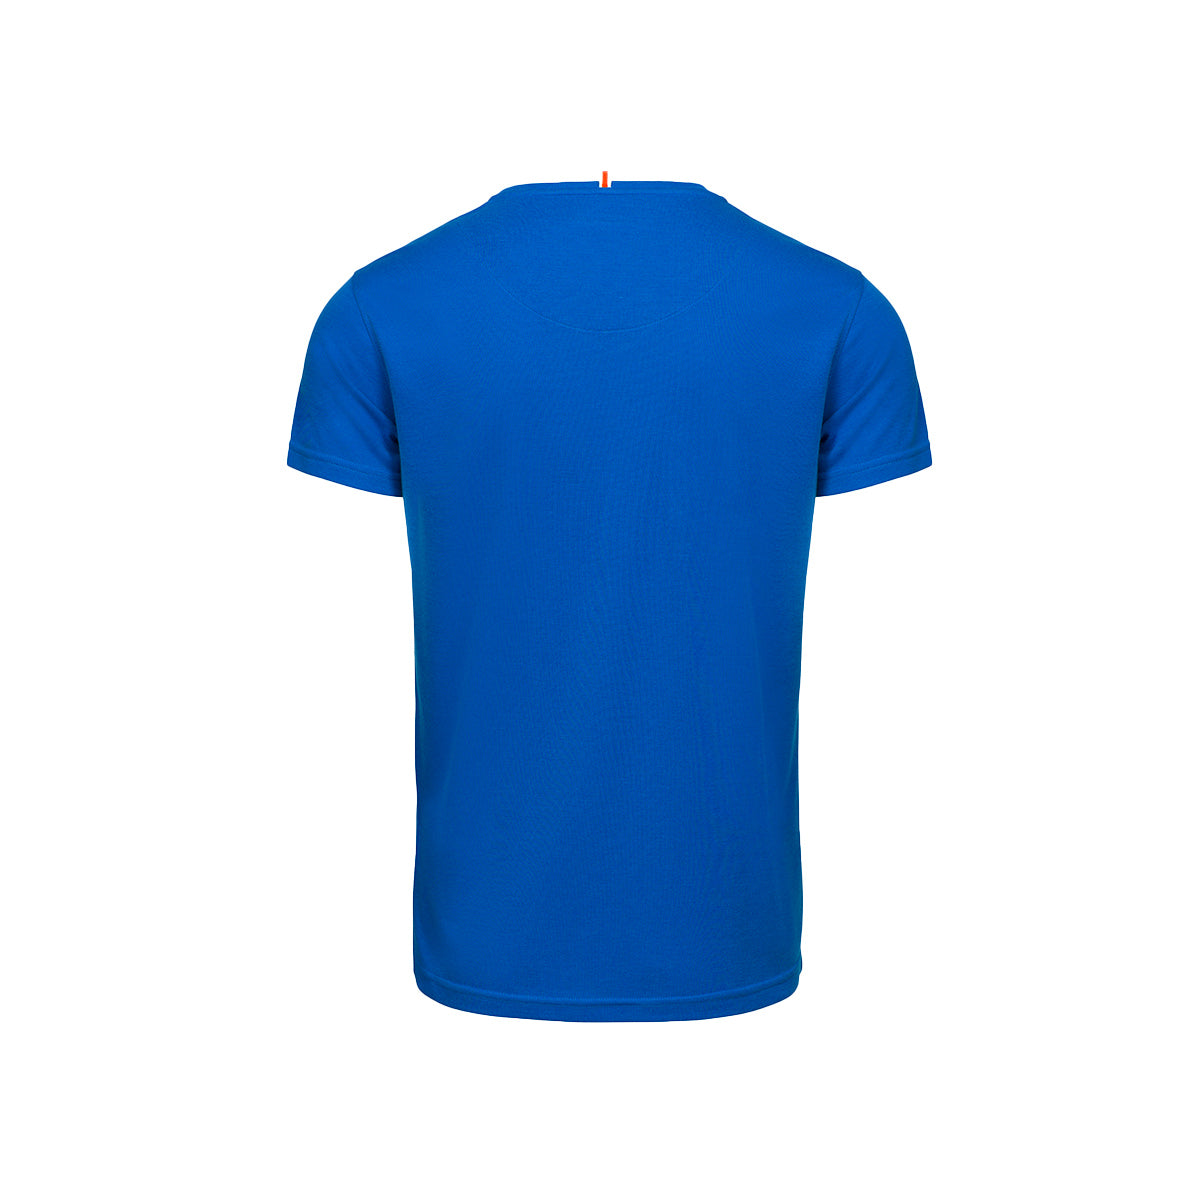 Citara O Neck T-Shirt - background::white,variant::blue